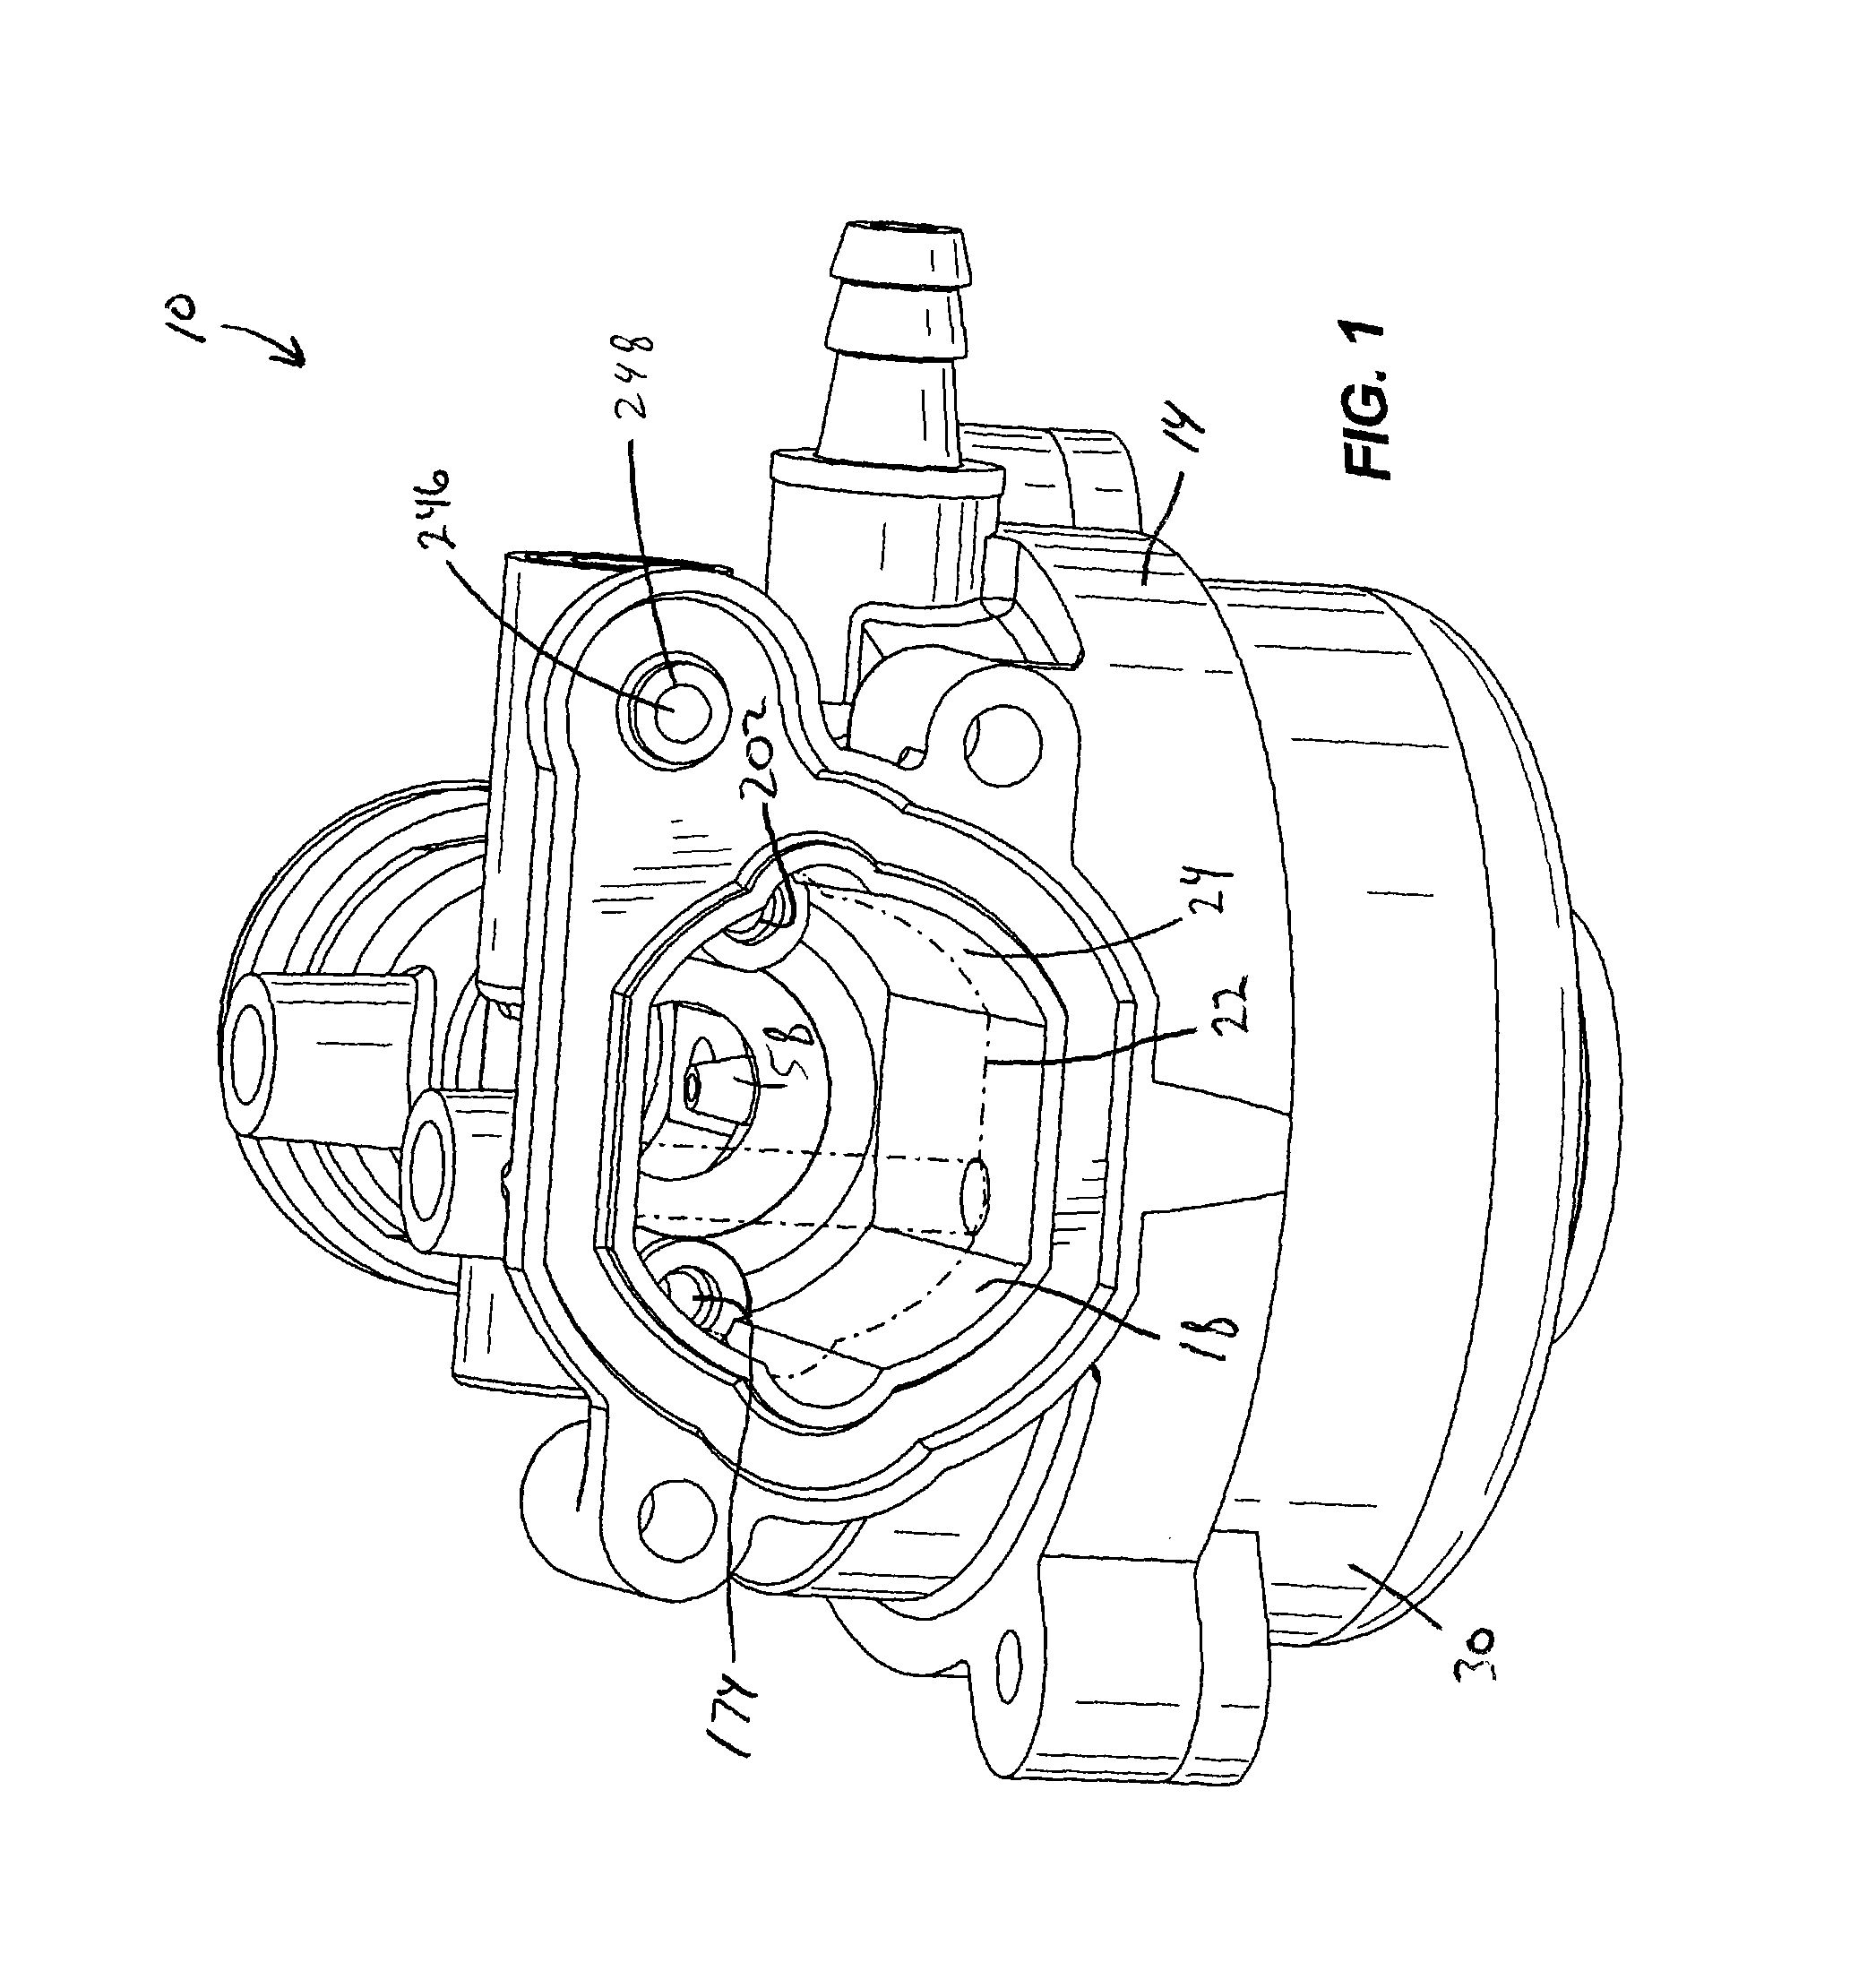 Brevet Us8333366 Carburetor Including One Piece Fuel Metering Zenith Stromberg Parts Diagram Besides Patent Drawing